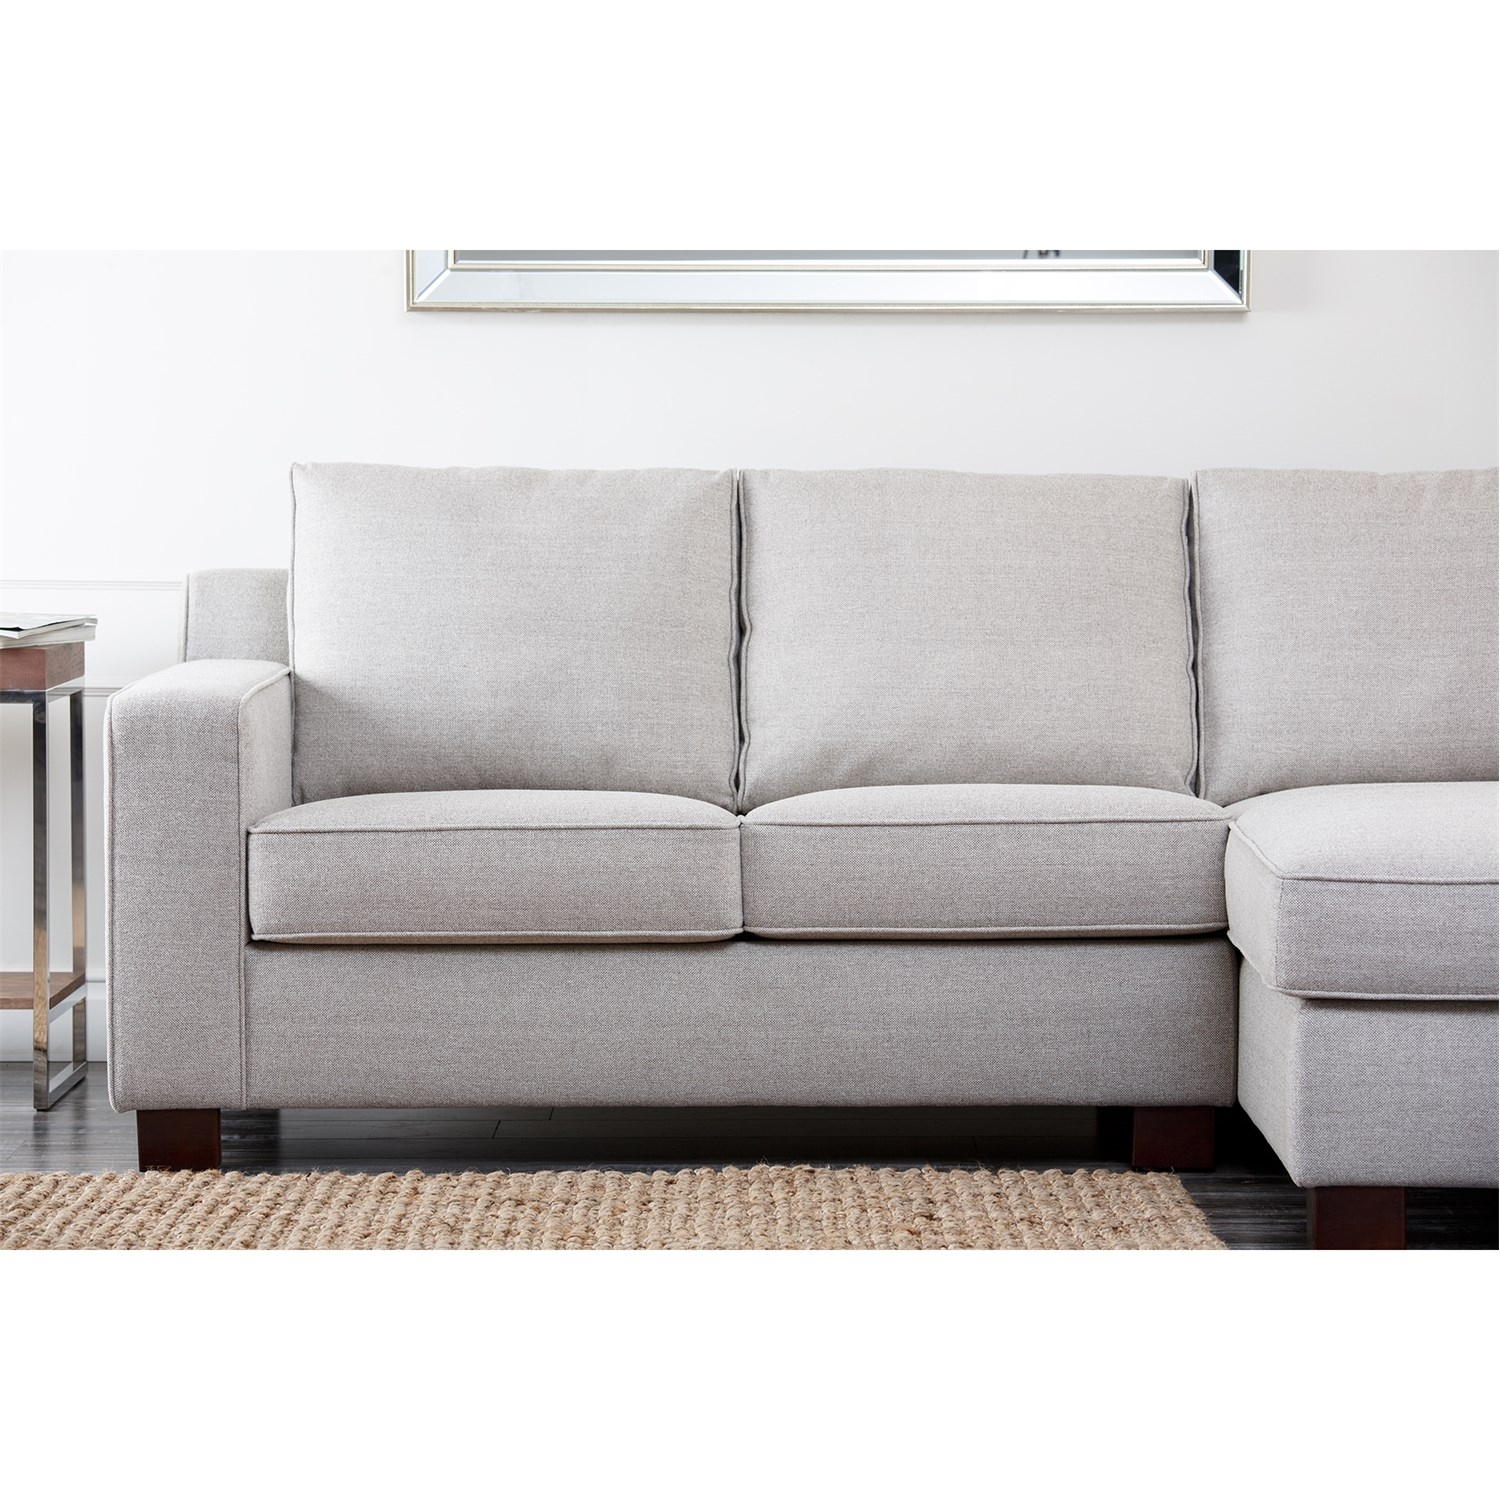 Featured Image of Regina Sectional Sofas